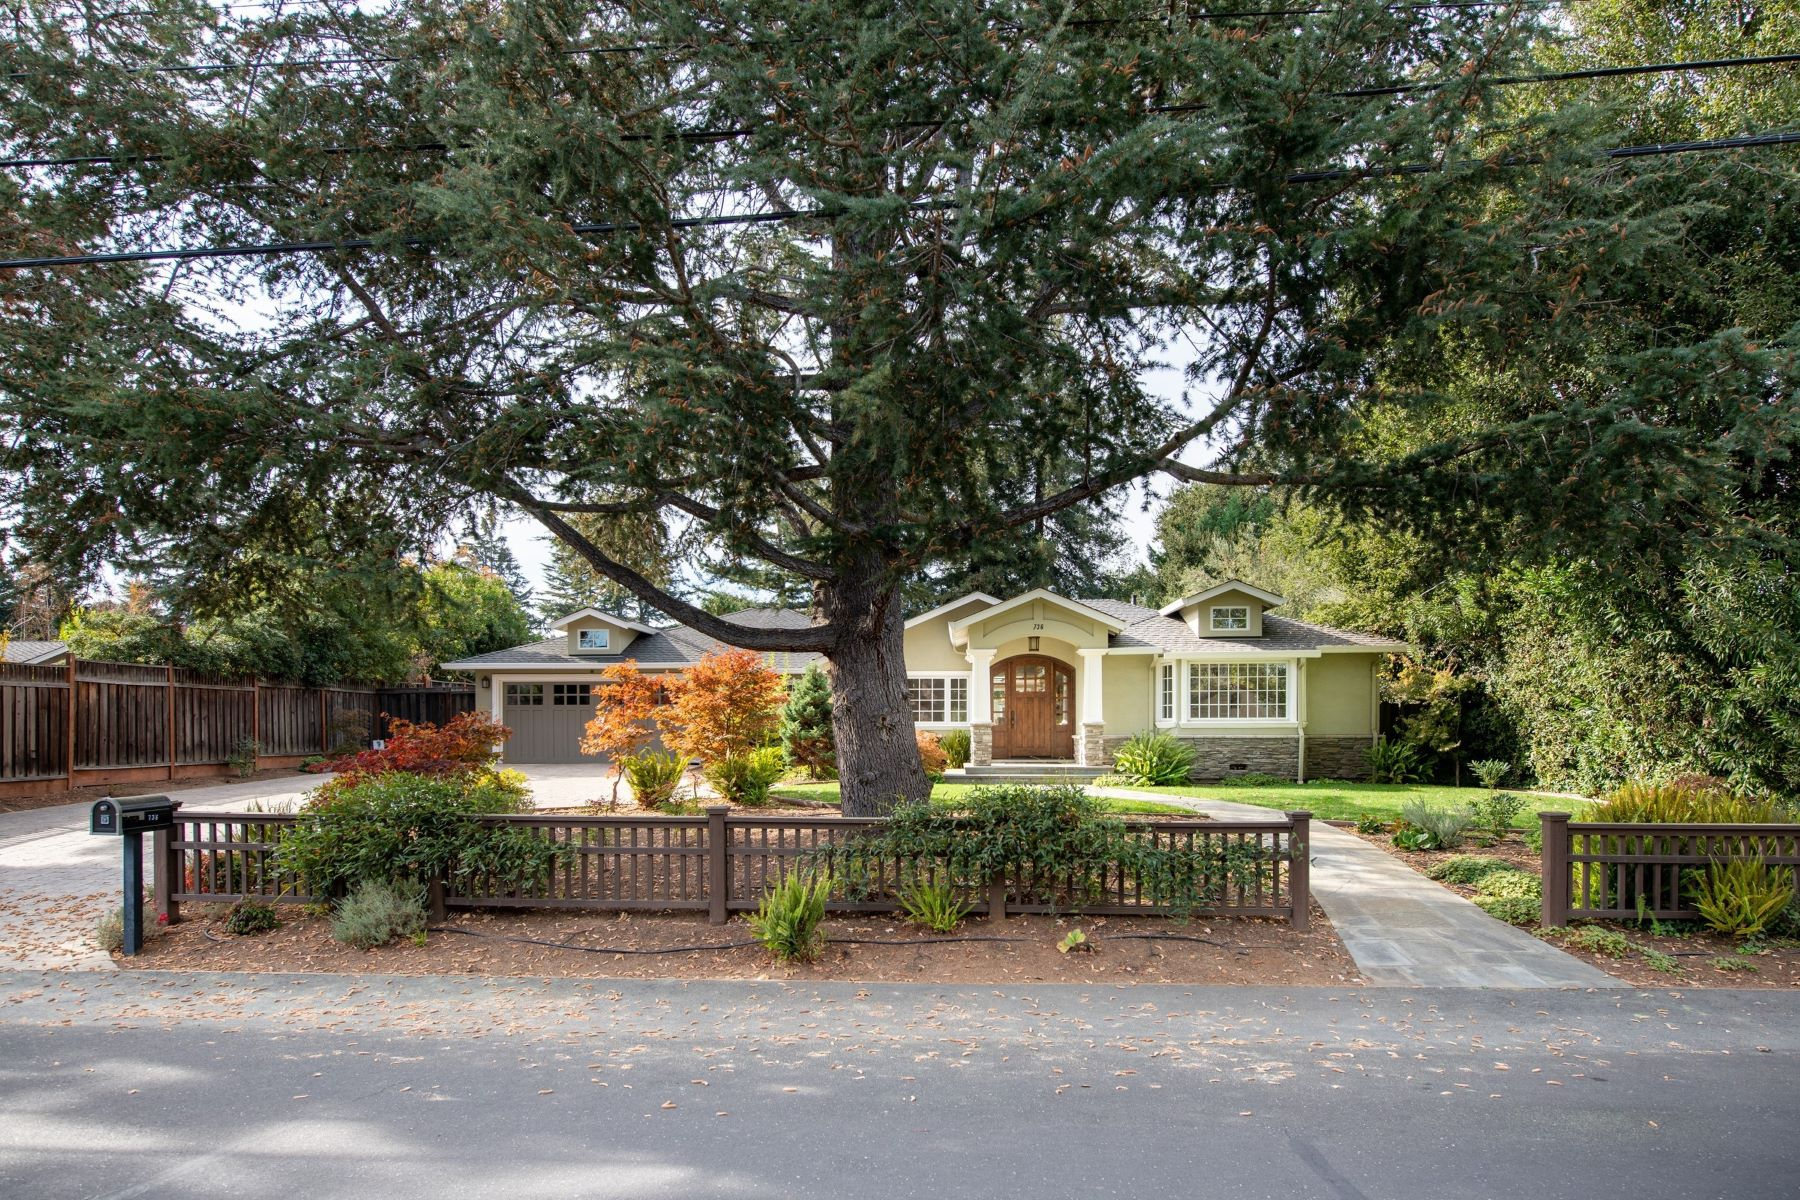 Single Family Homes for Sale at DESIGNER RENOVATION ON OVER 16K LOT 736 Campbell Avenue Los Altos, California 94024 United States